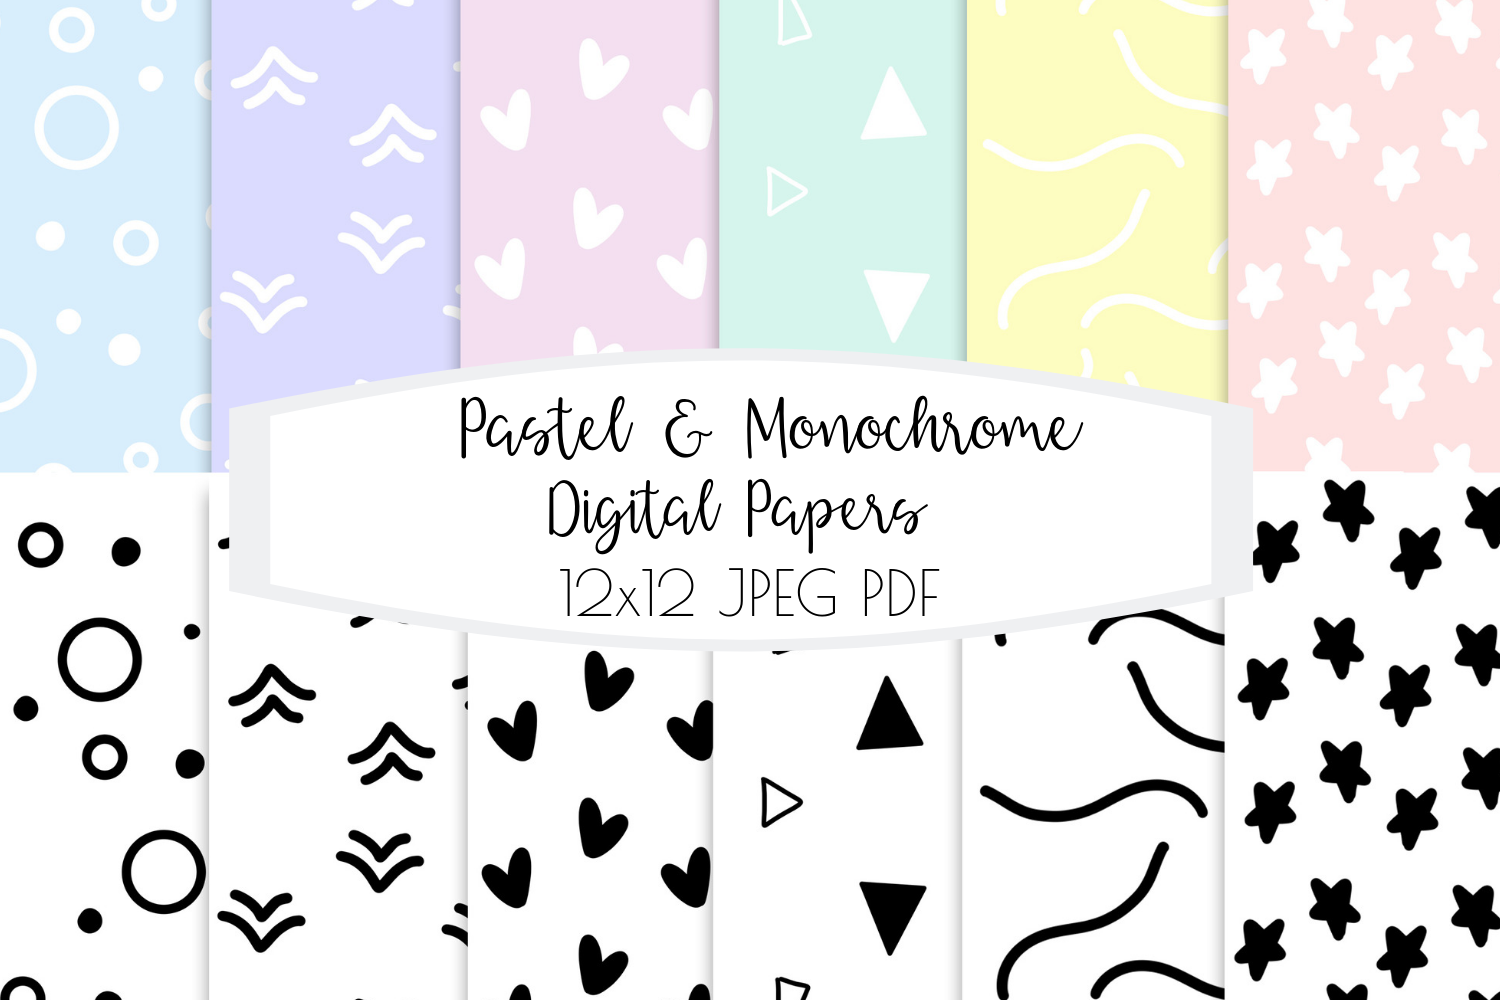 Pastel and Monochrome - Digital Papers for Scrapbooking / Pl example image 1